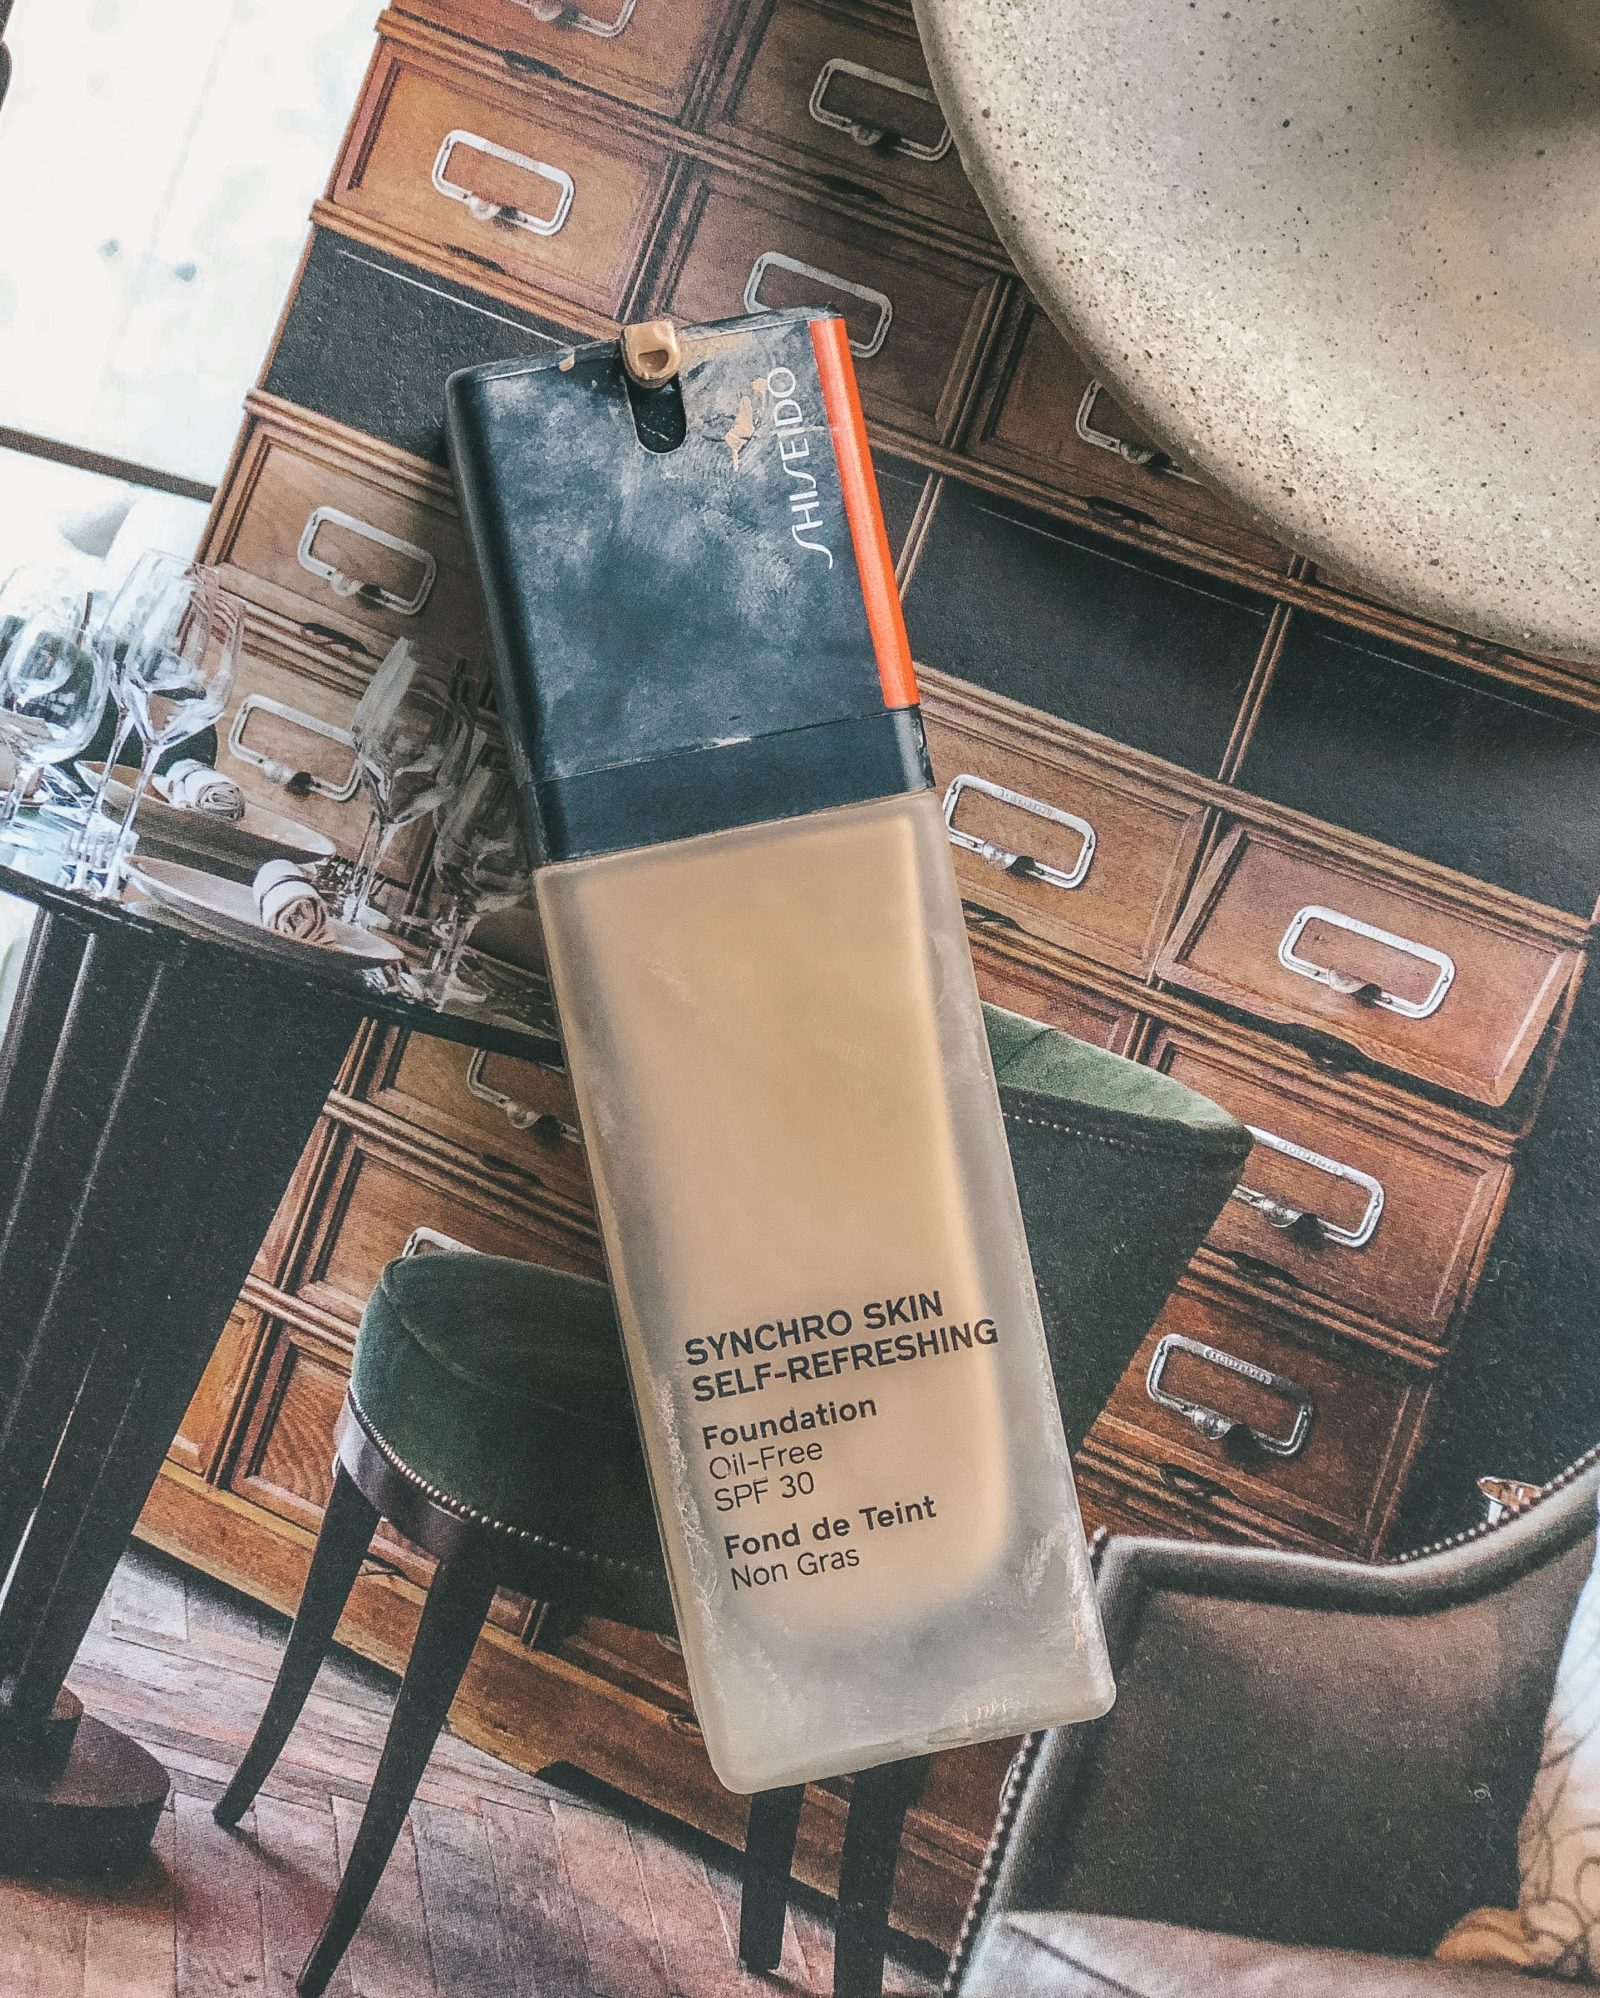 Shiseido-Synchro-Skin-Self-Refreshing-Foundation